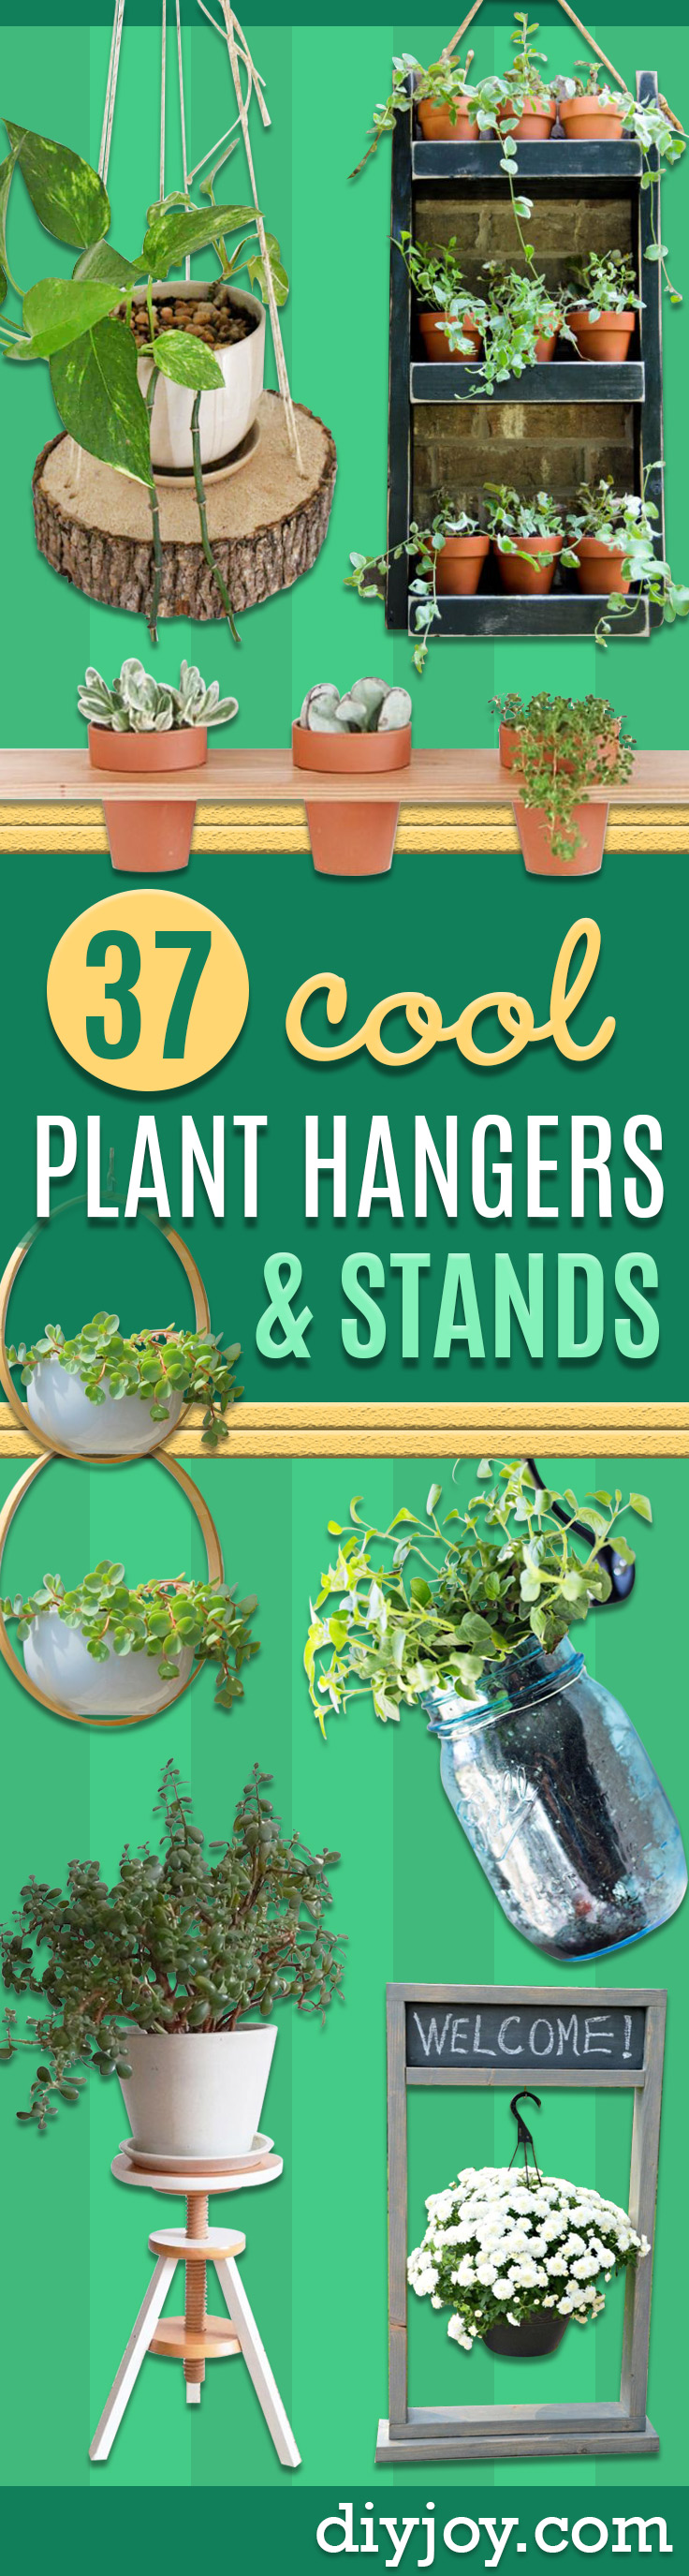 DIY Plant Hangers - Cute and Easy Home Decor Ideas for Plants - How To Make Planters, Hanging Pot Holders, Wire, Rope and Baskets - Quick DIY Gifts Ideas, Macrame Plant Hanger http://diyjoy.com/diy-plant-hangers-stands